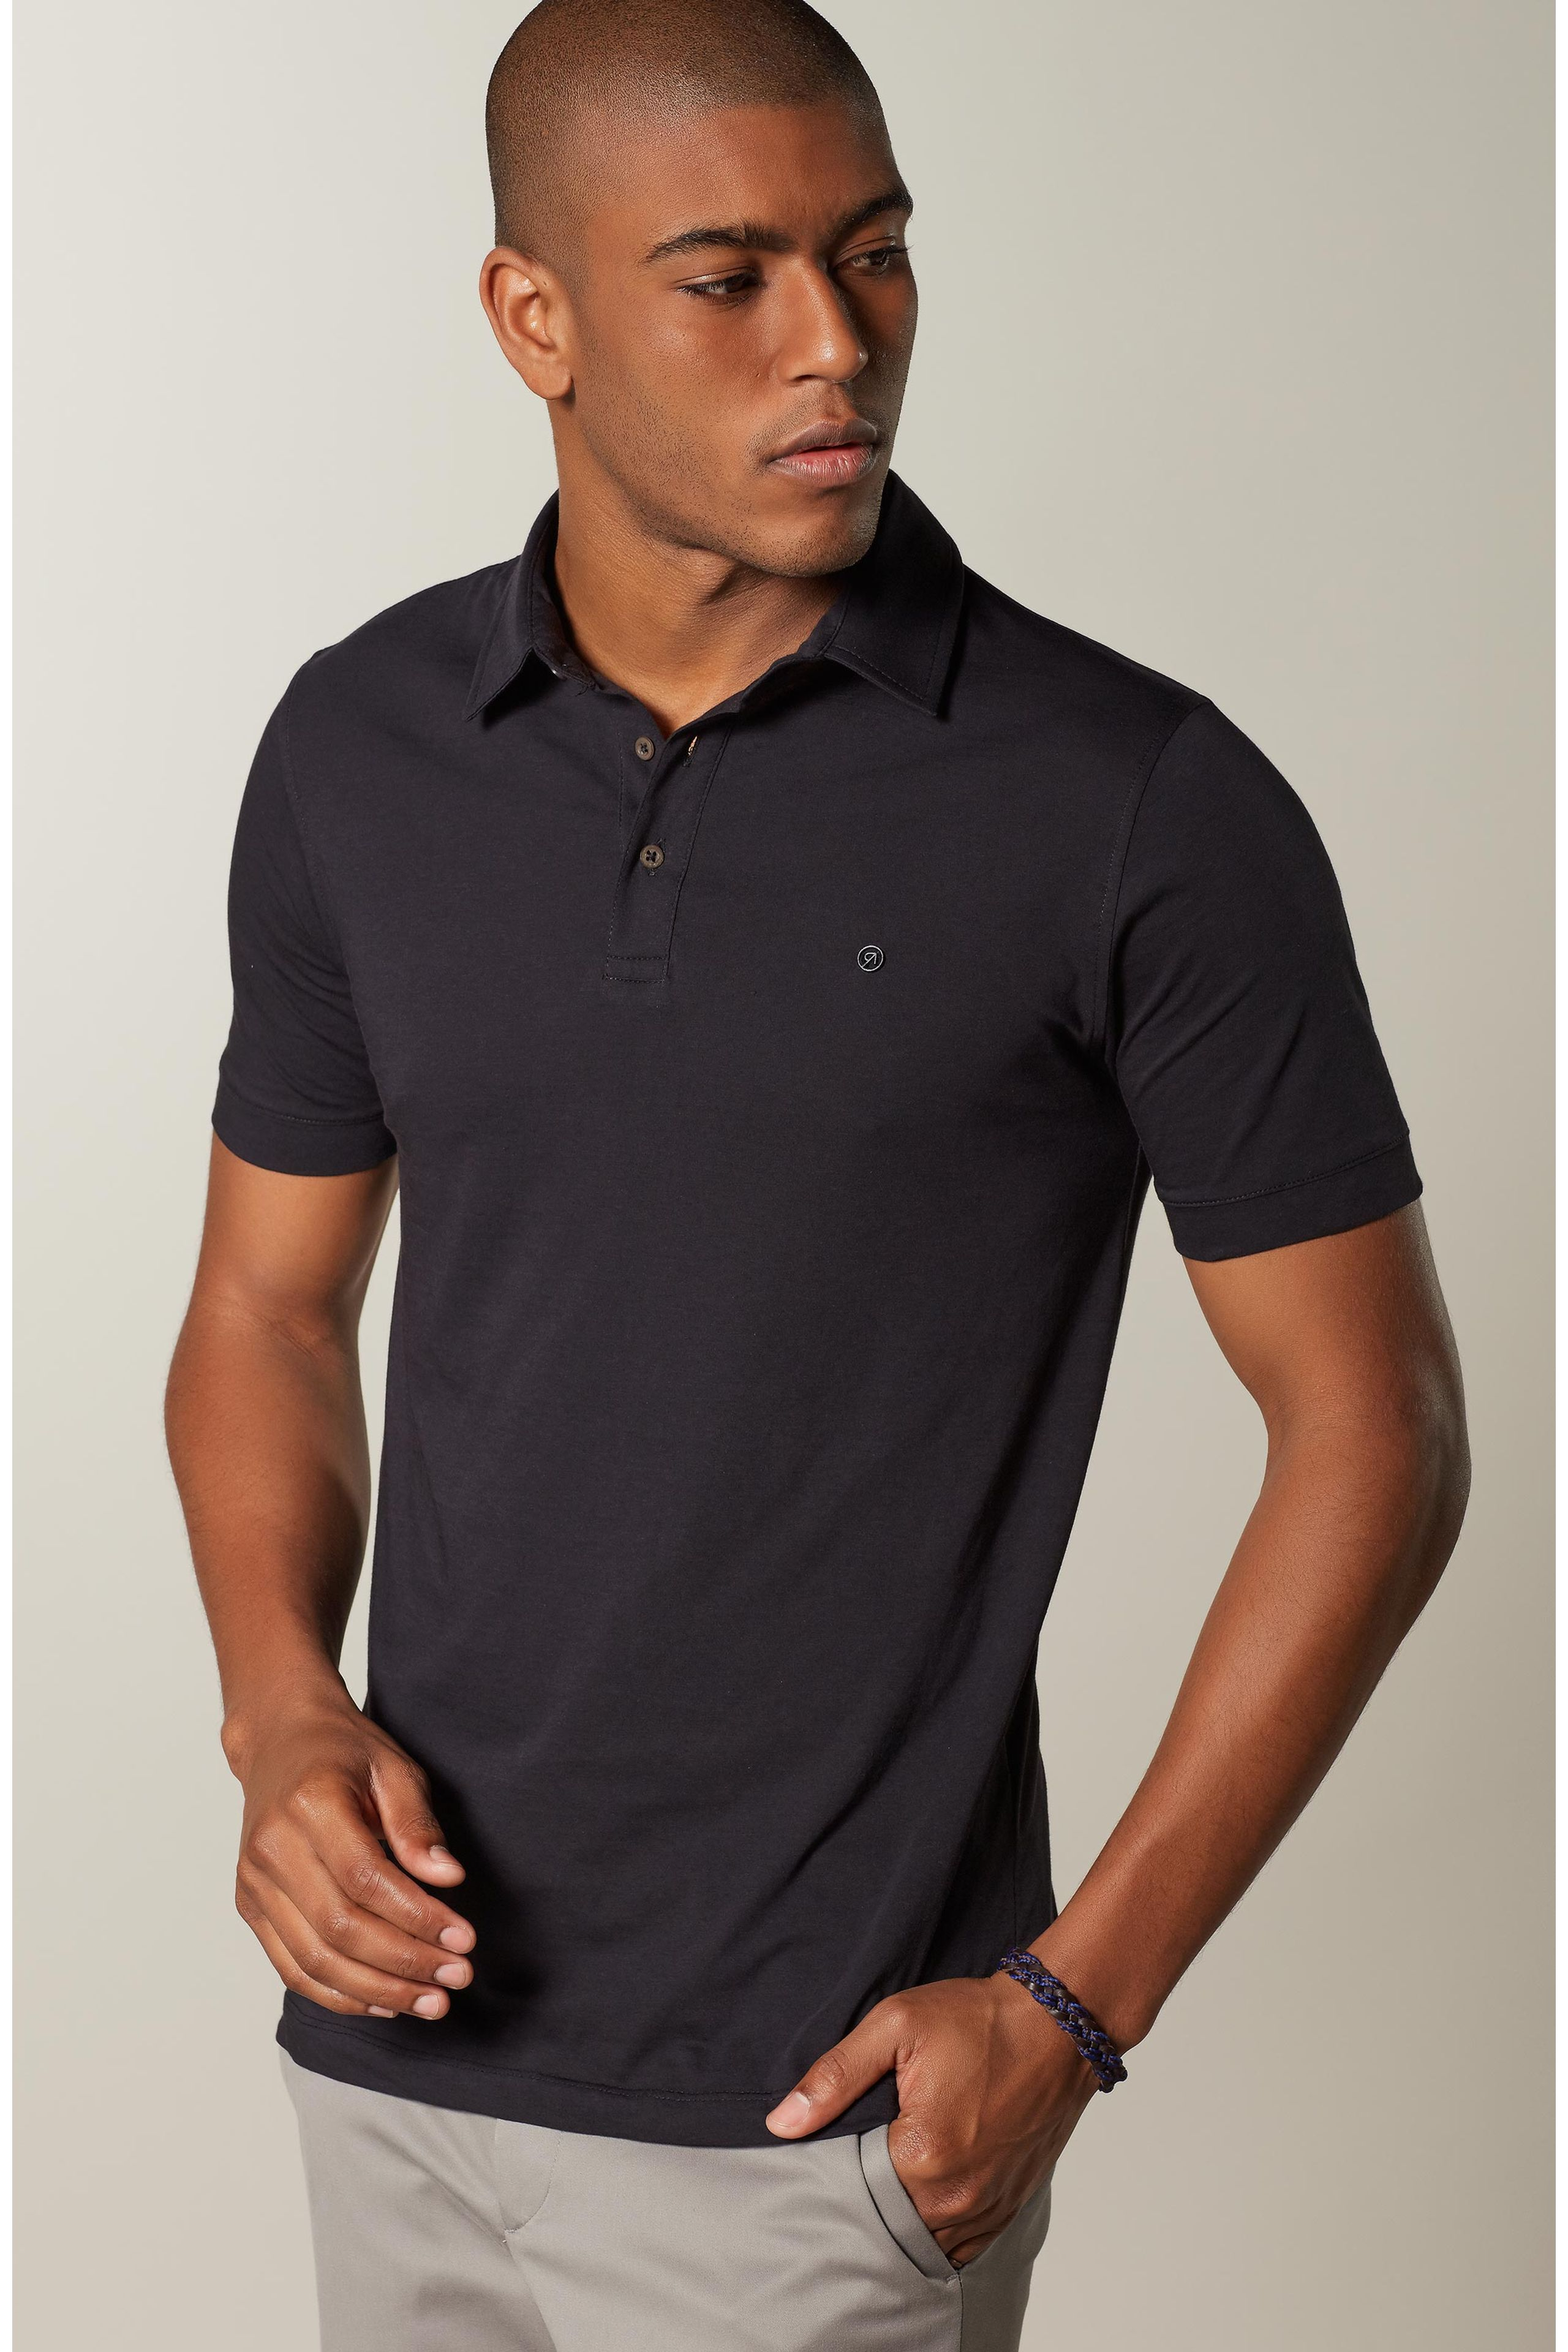 8320ICV00090_987_1-POLO-MC-PIMA-COTTON